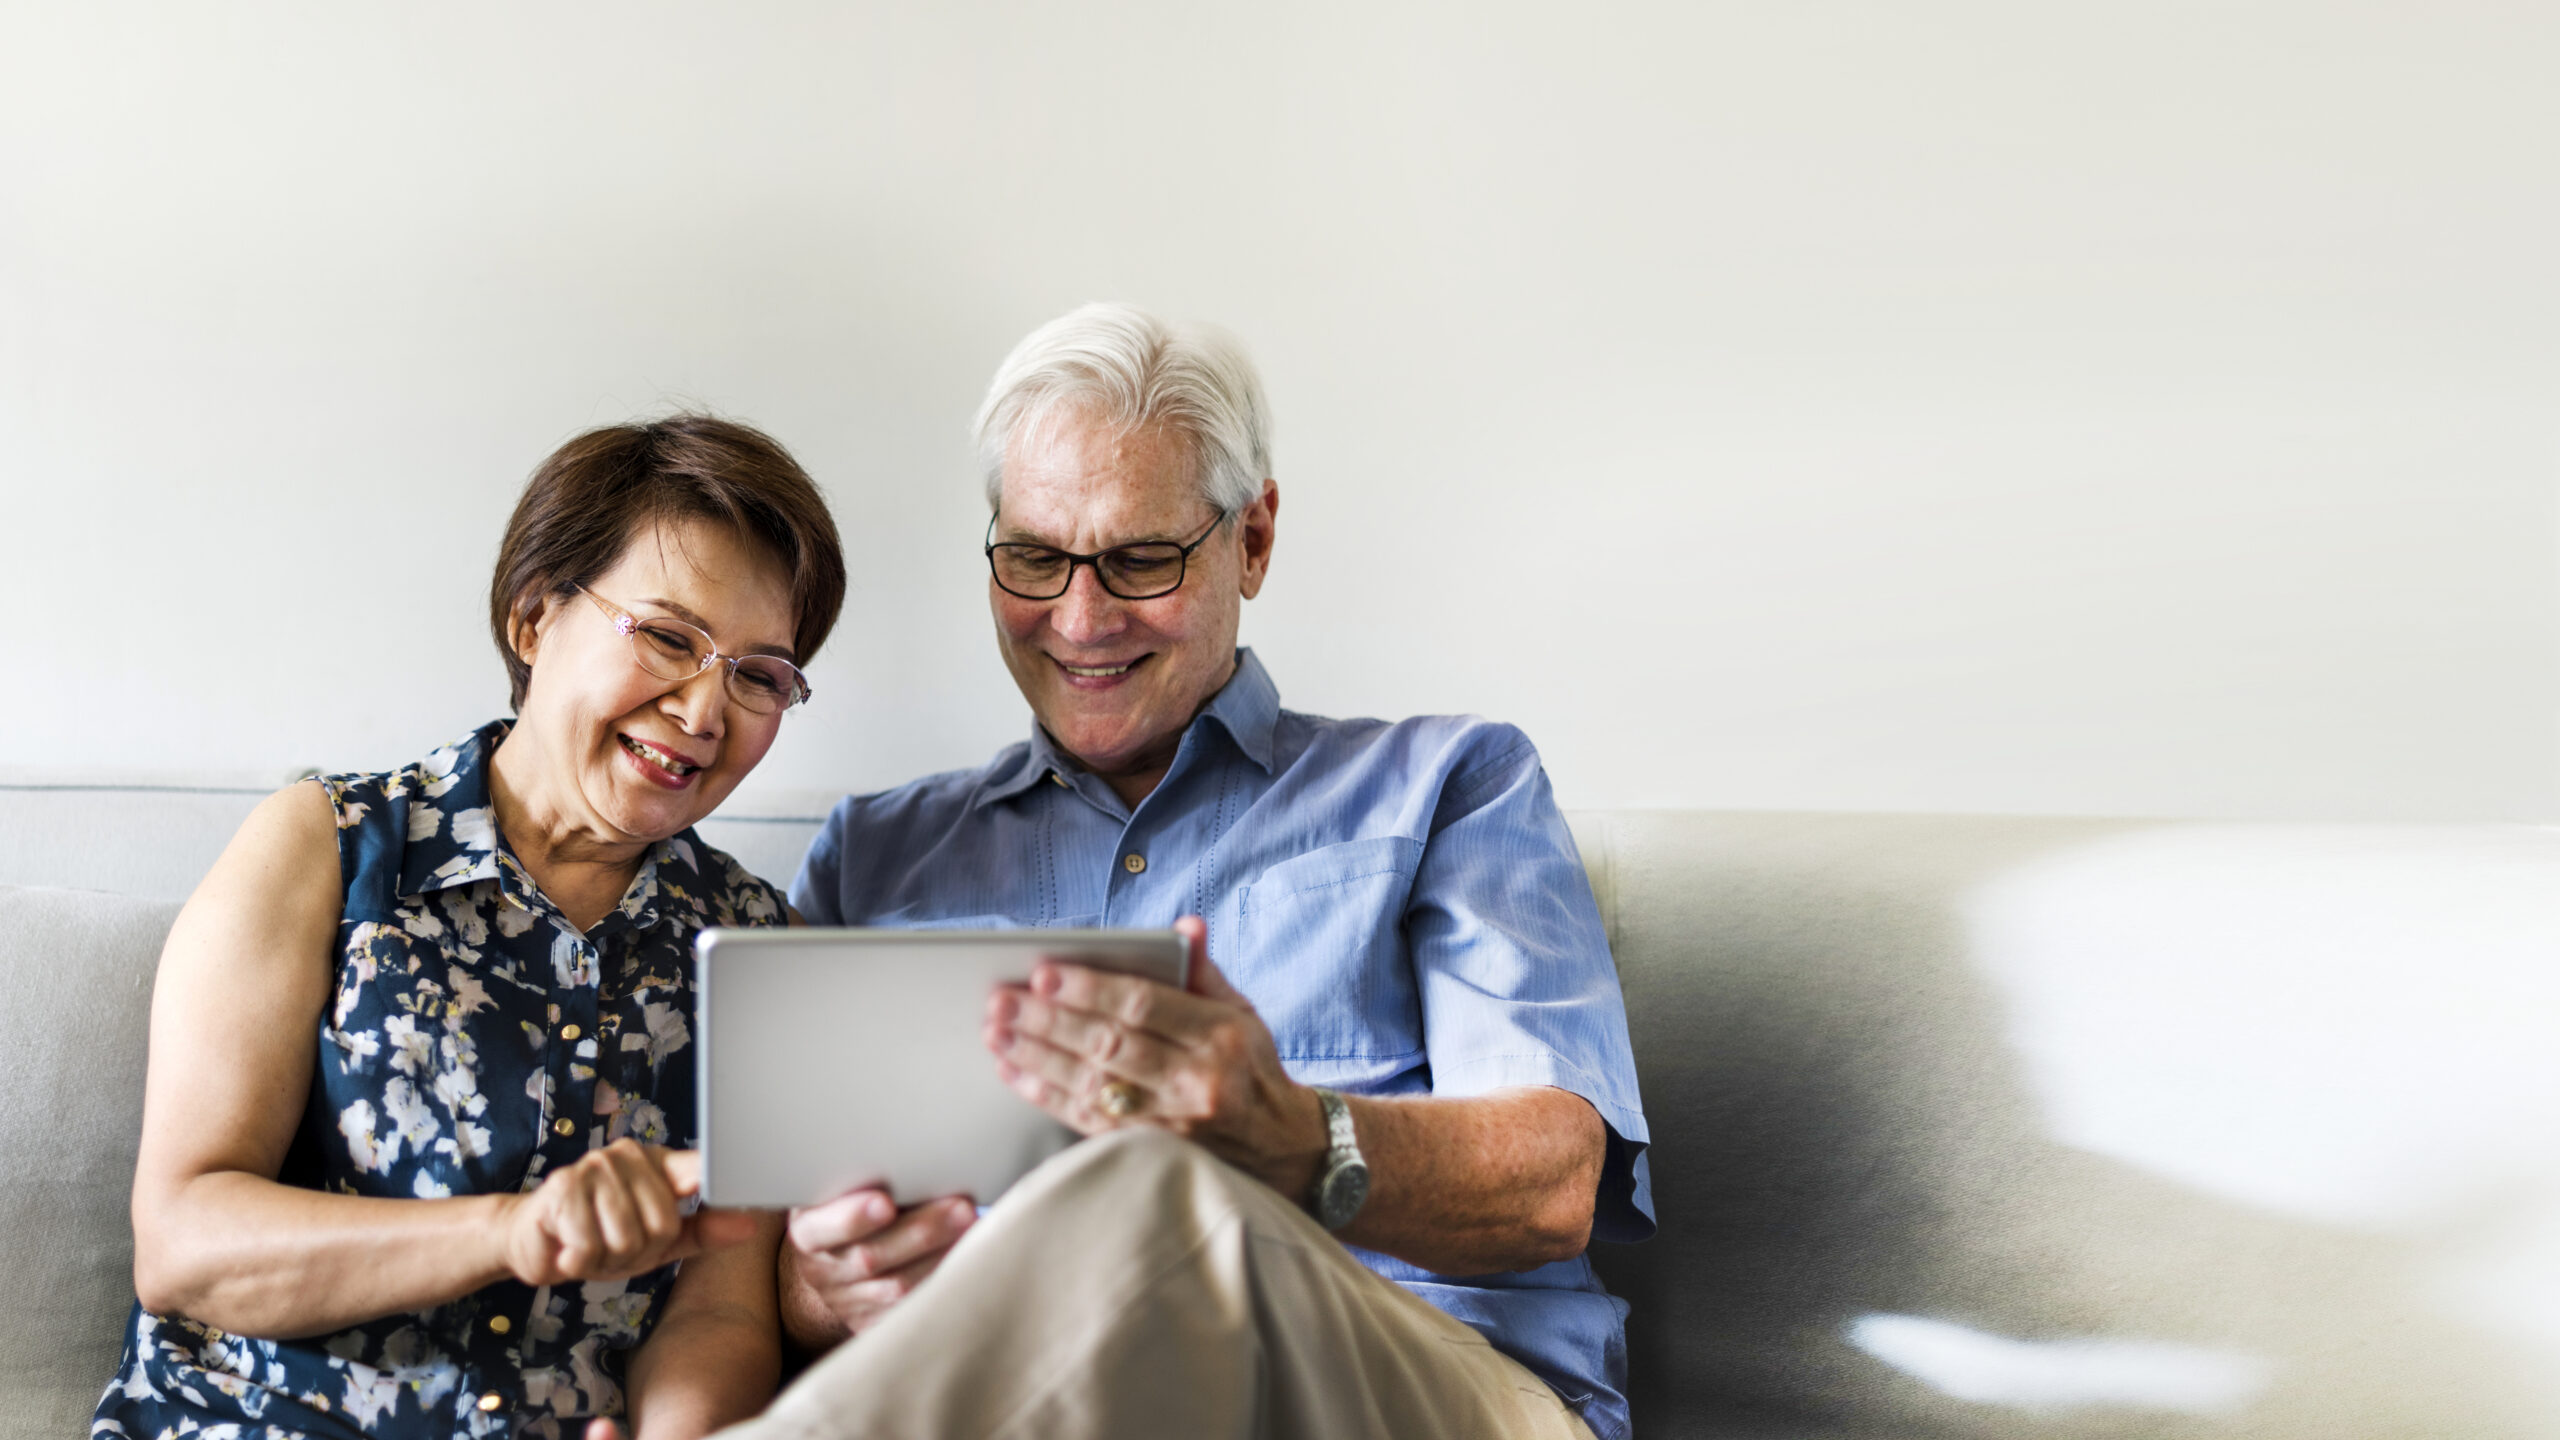 Senior couple using a digital device in a living room